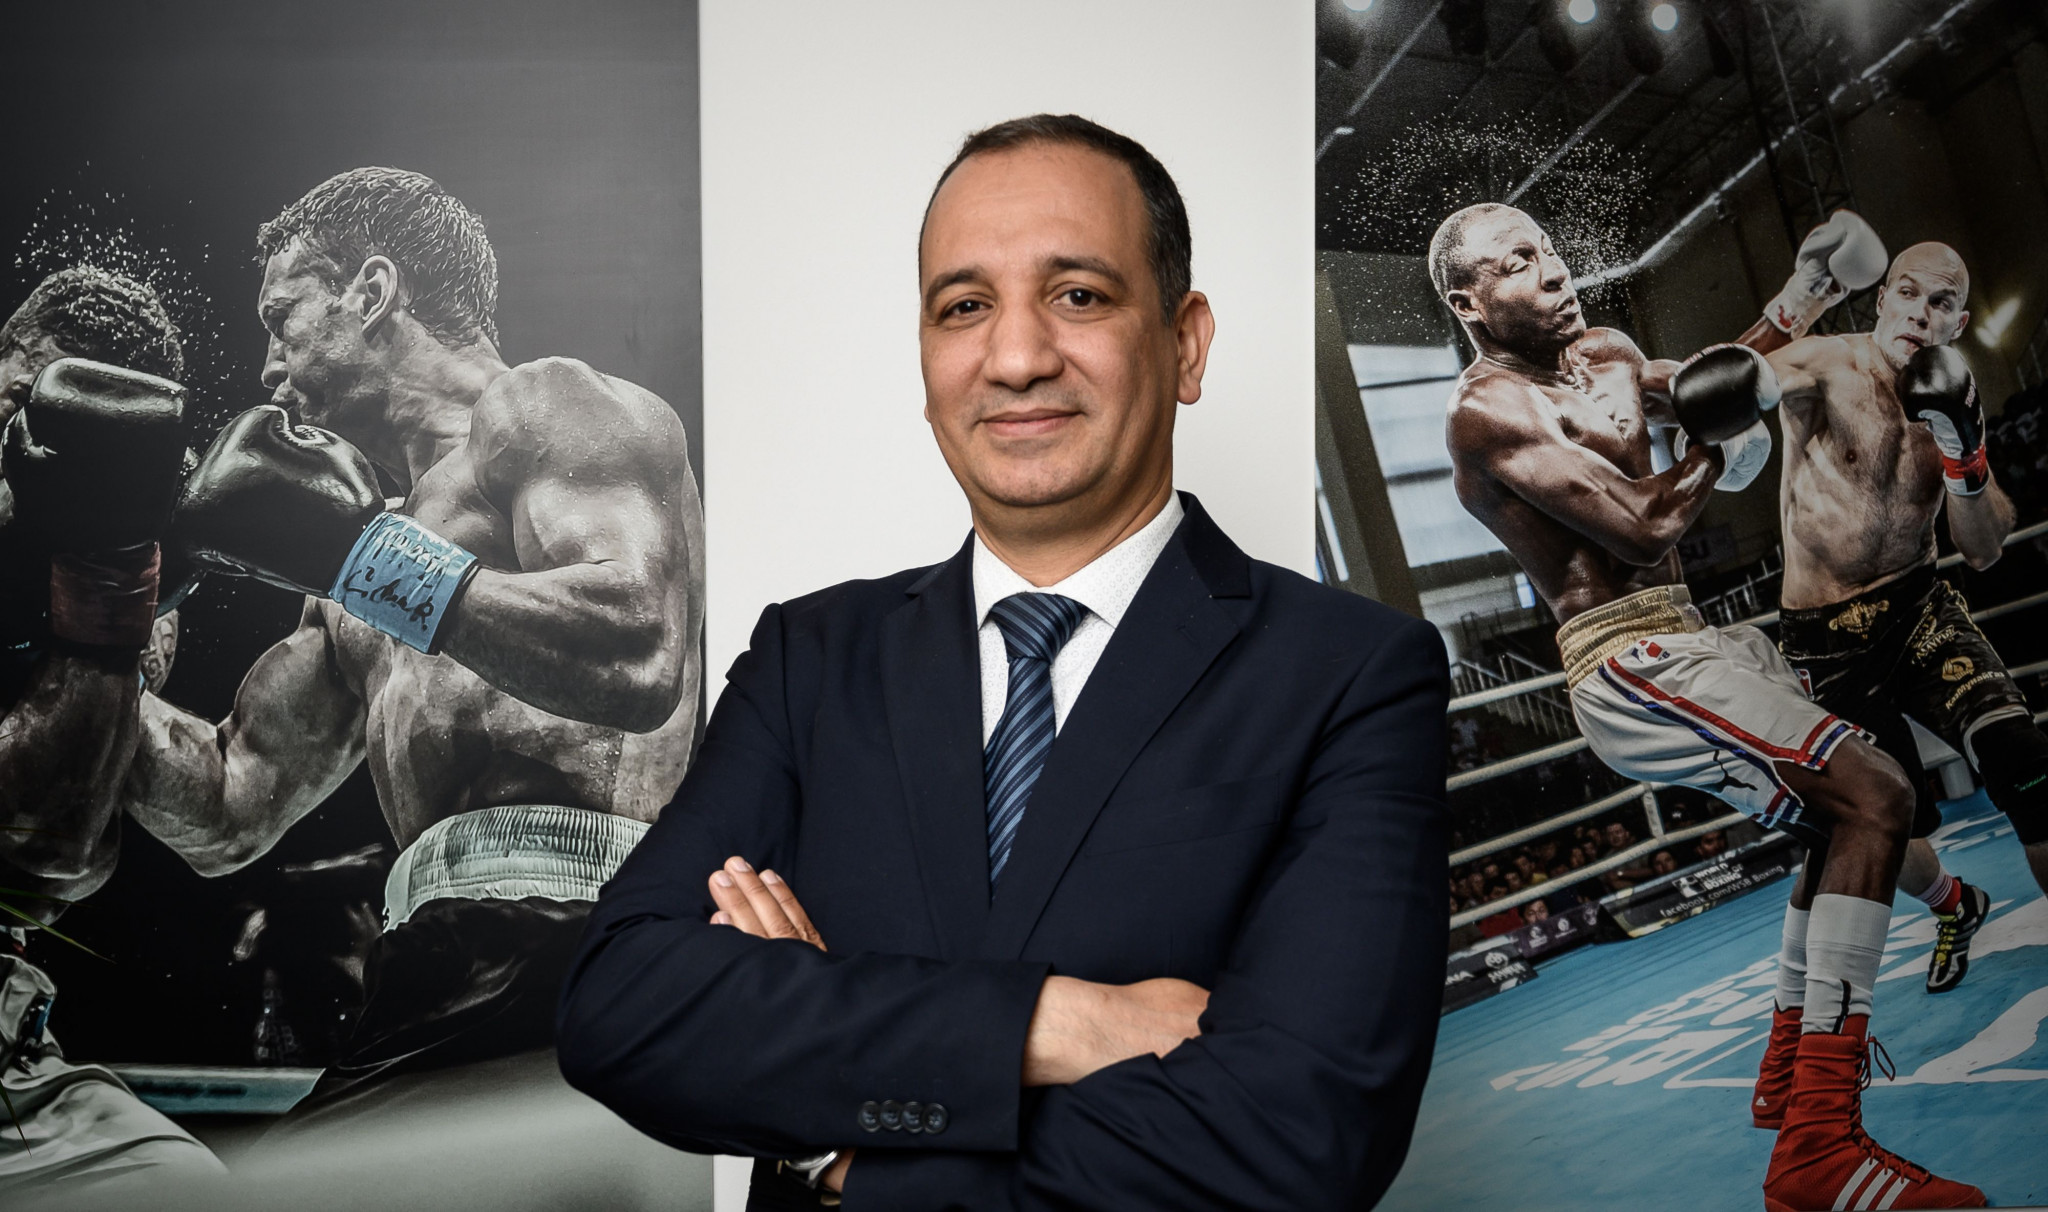 AIBA President Mohamed Moustahsane revealed his scepticism about the BFI claims ©Getty Images